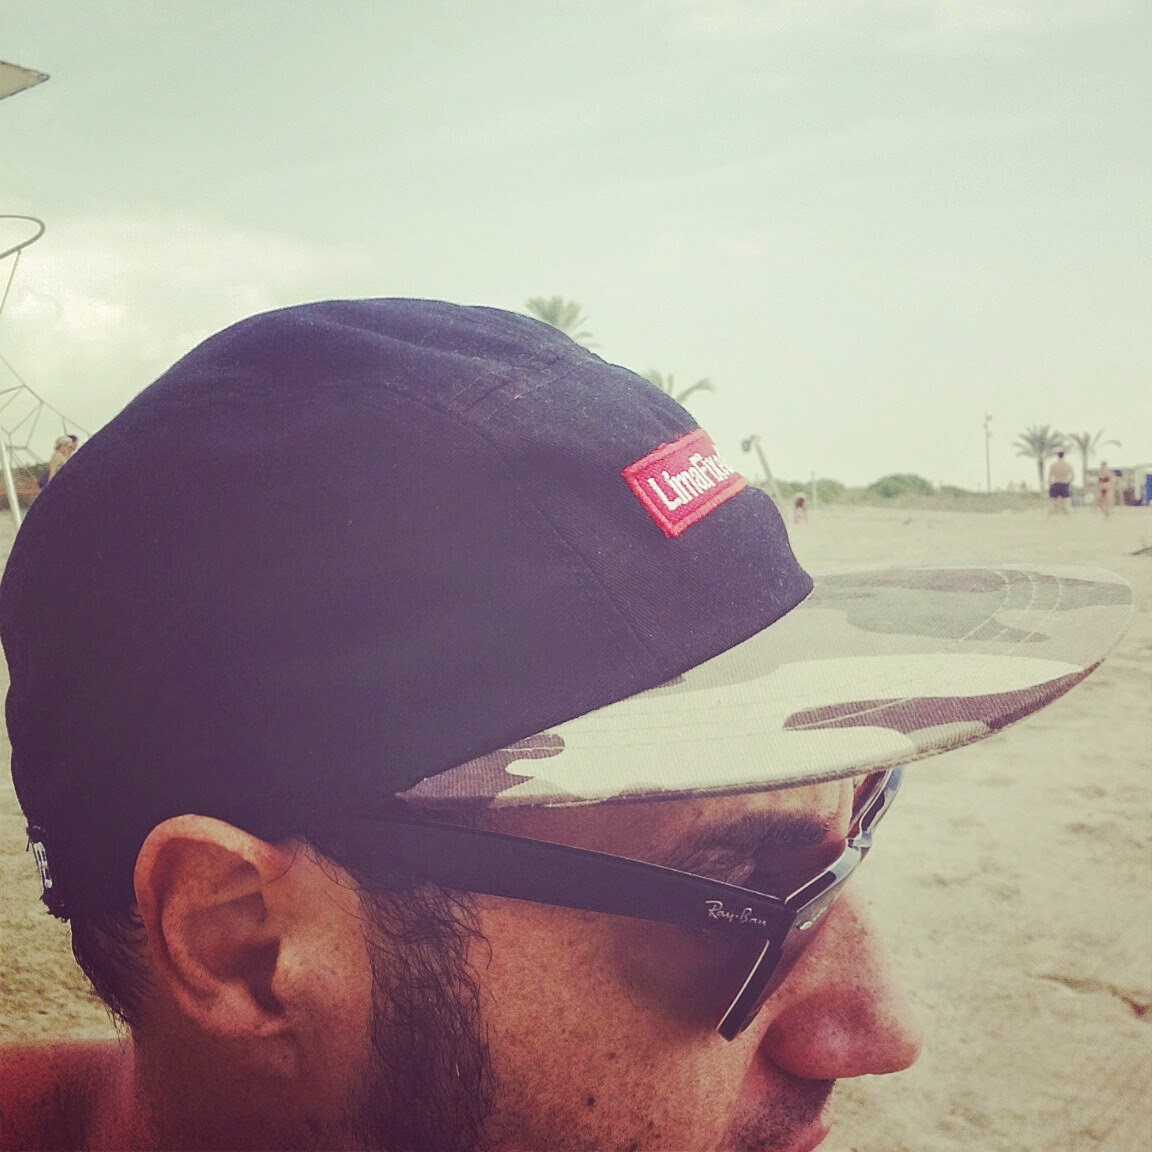 PRODUCT REVIEW: Lima Fixed Bikes five panel cap